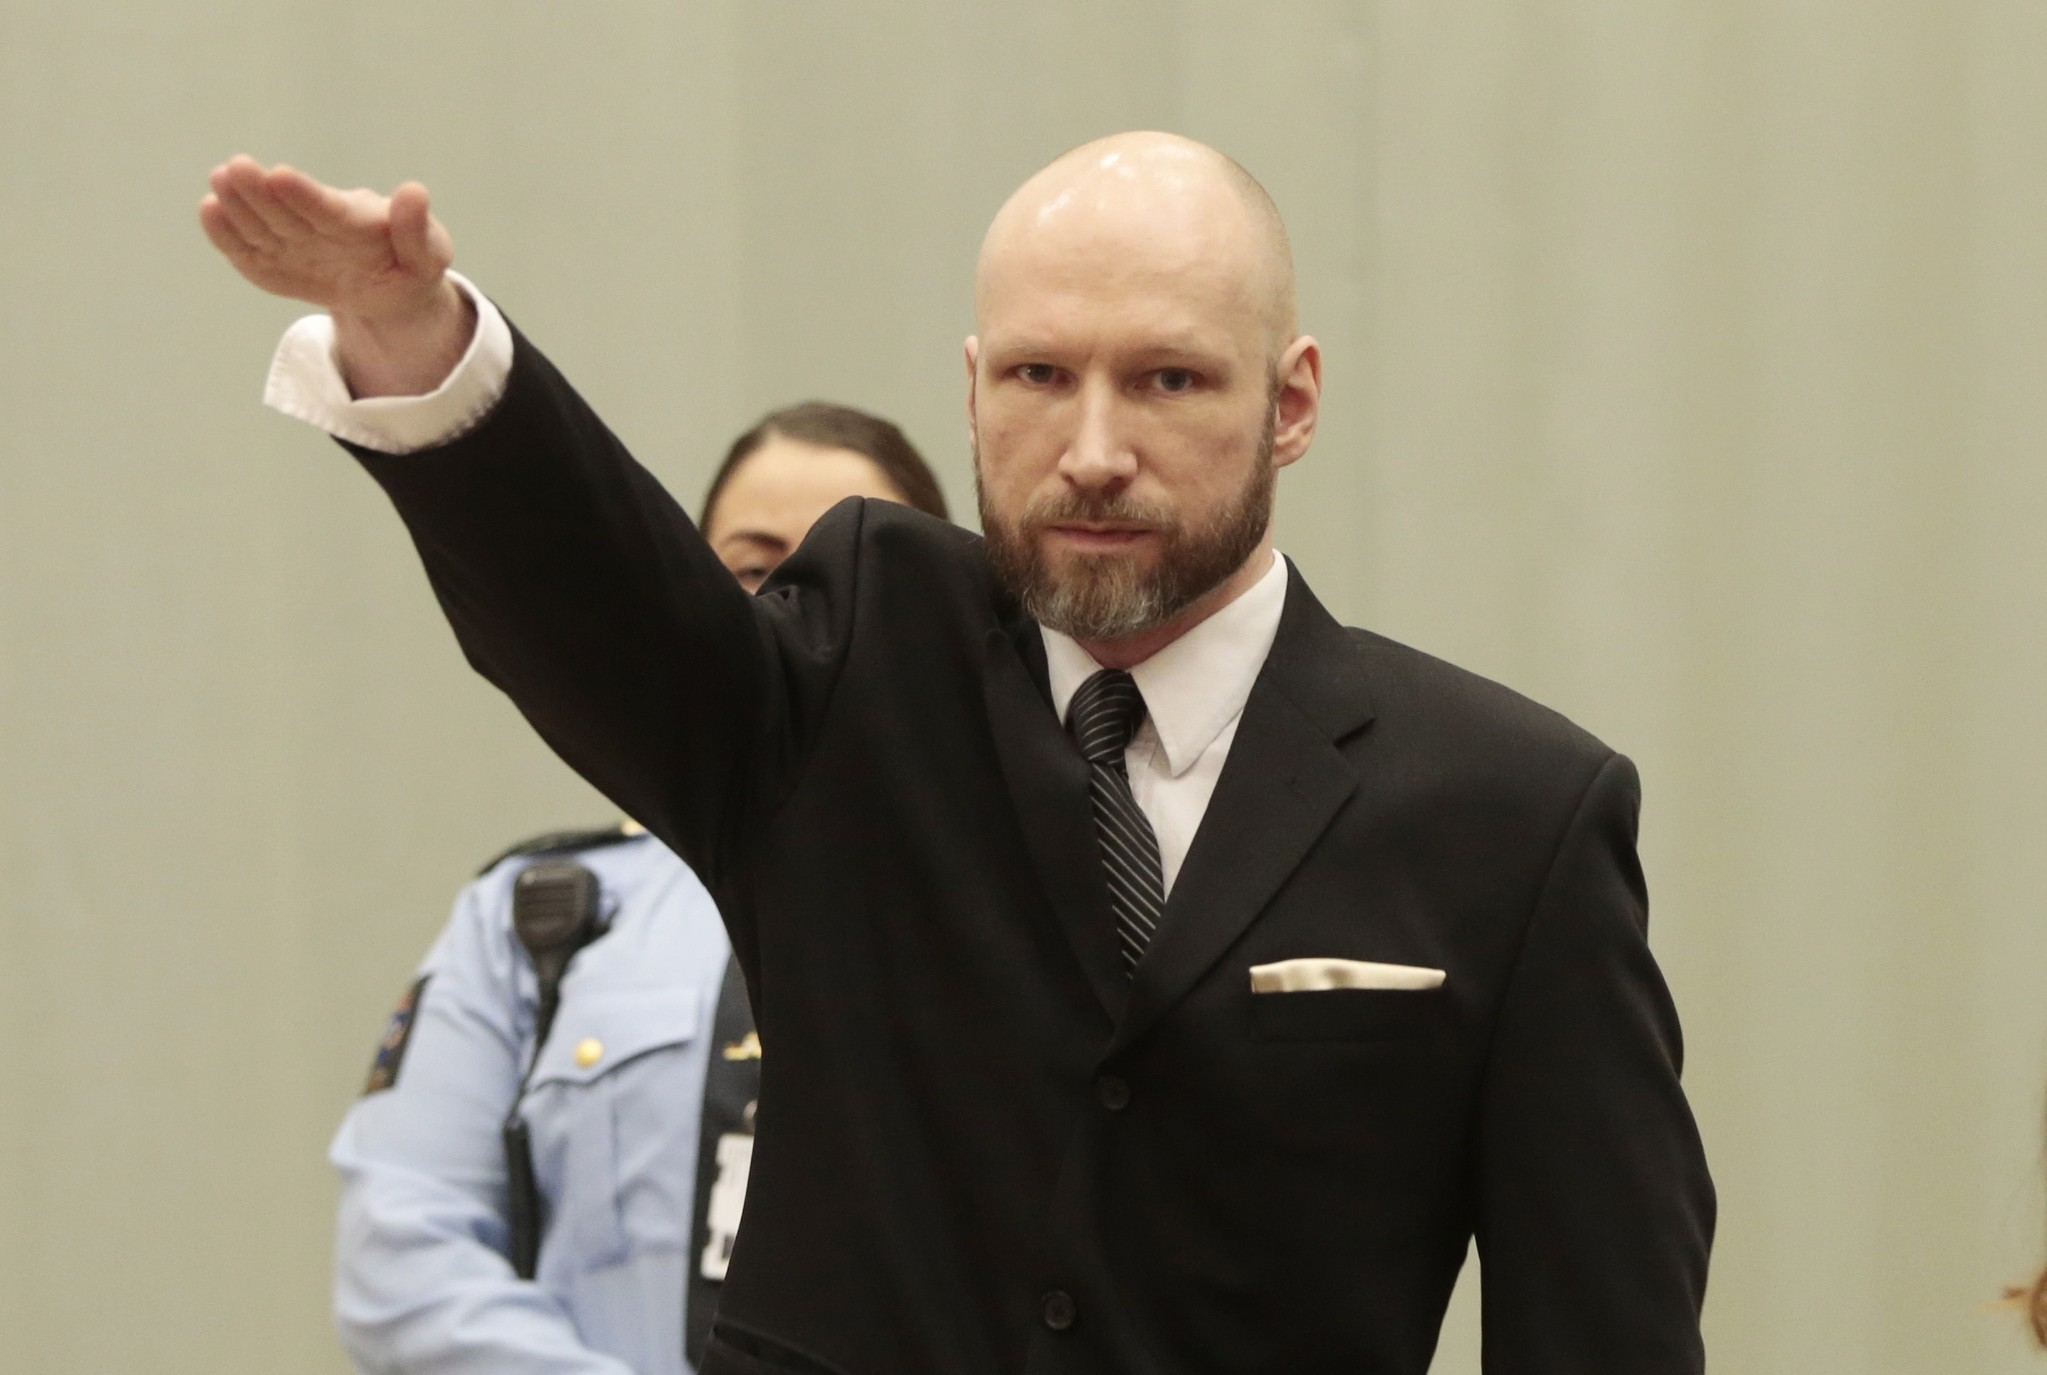 Anders Behring Breivik makes a Nazi salute ahead his appeal hearing at a court at the Telemark prison in Skien, Norway, on January 10, 2017. (AFP Photo)